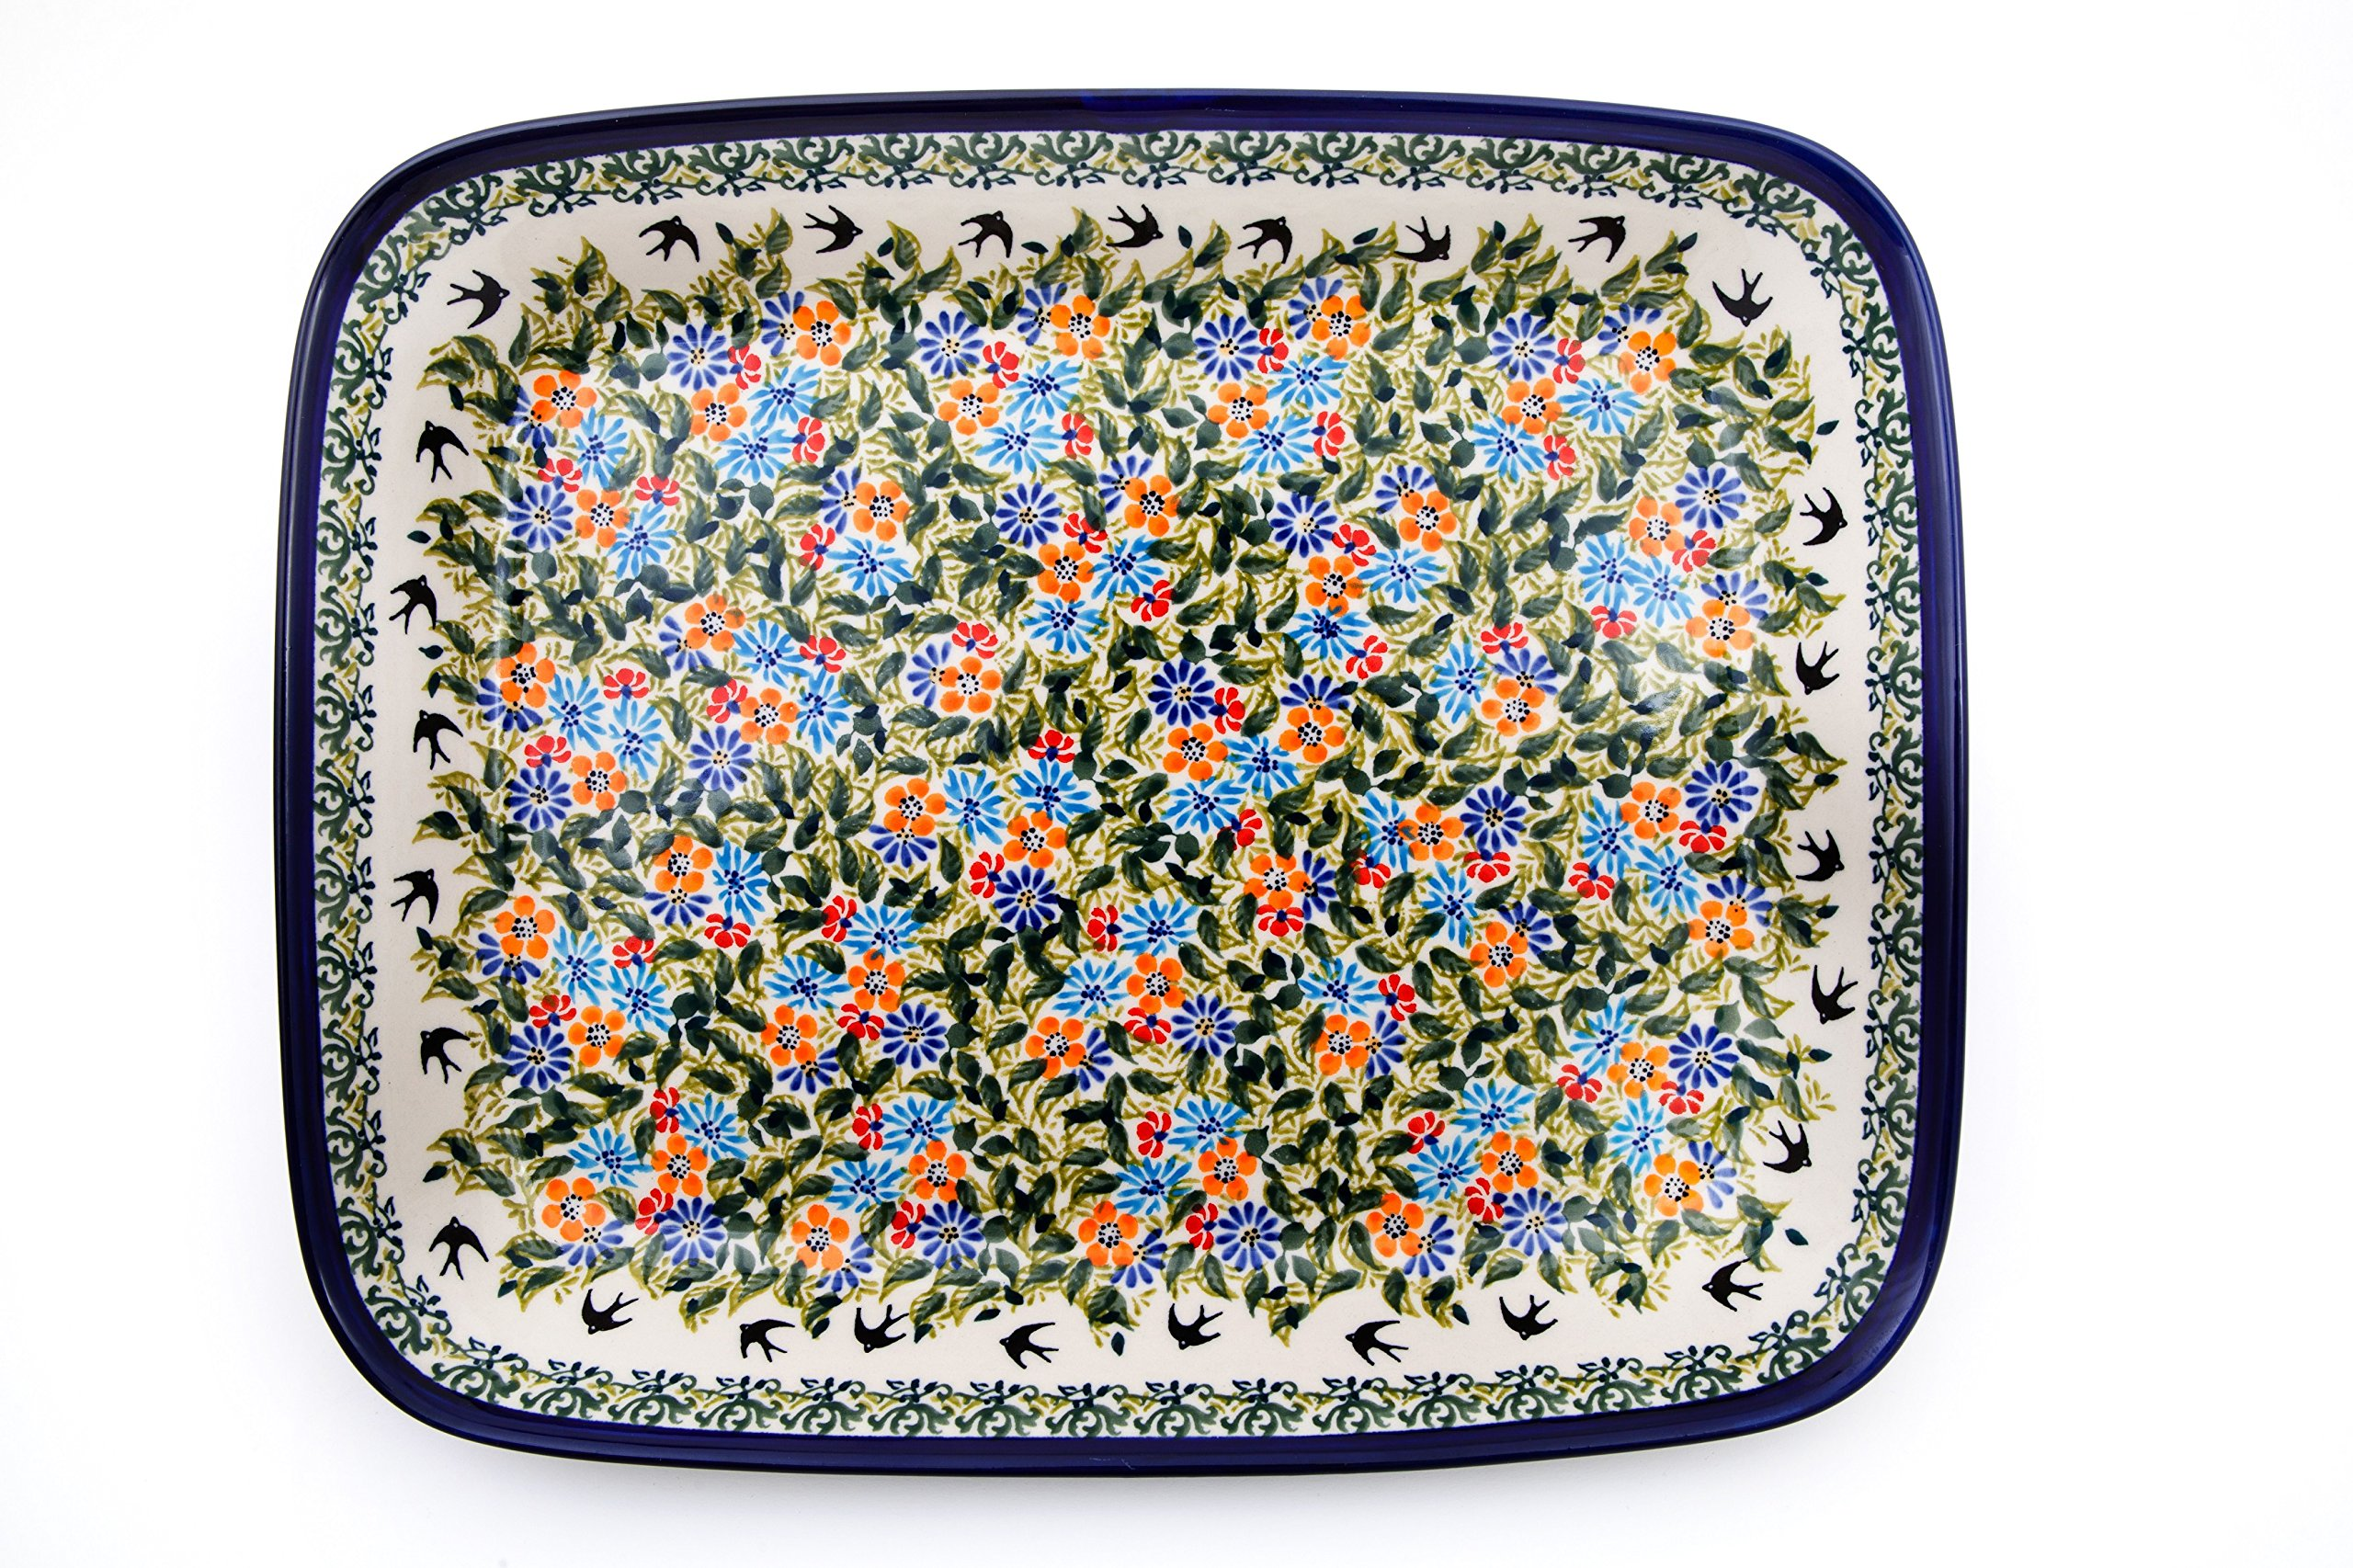 Hand-Decorated Polish Pottery Casserole Dish for 2-3people 29,5×22,5cm x 4.5cm in design DU182